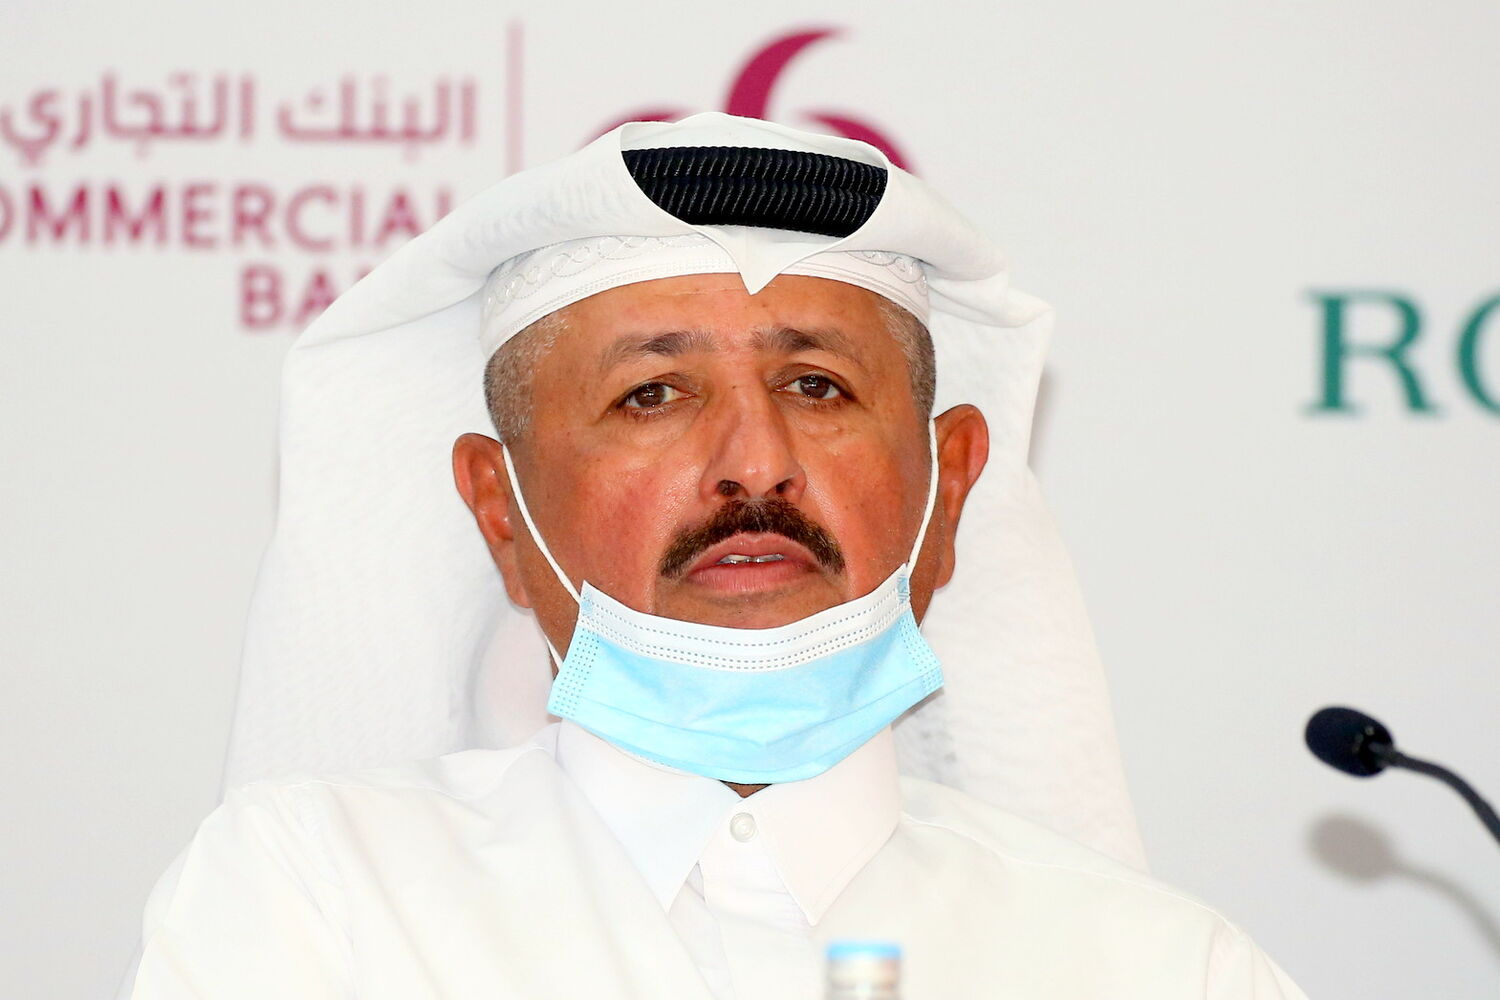 Qatar Masters means a lot for us, says QGA Secretary Fahad Al Naimi